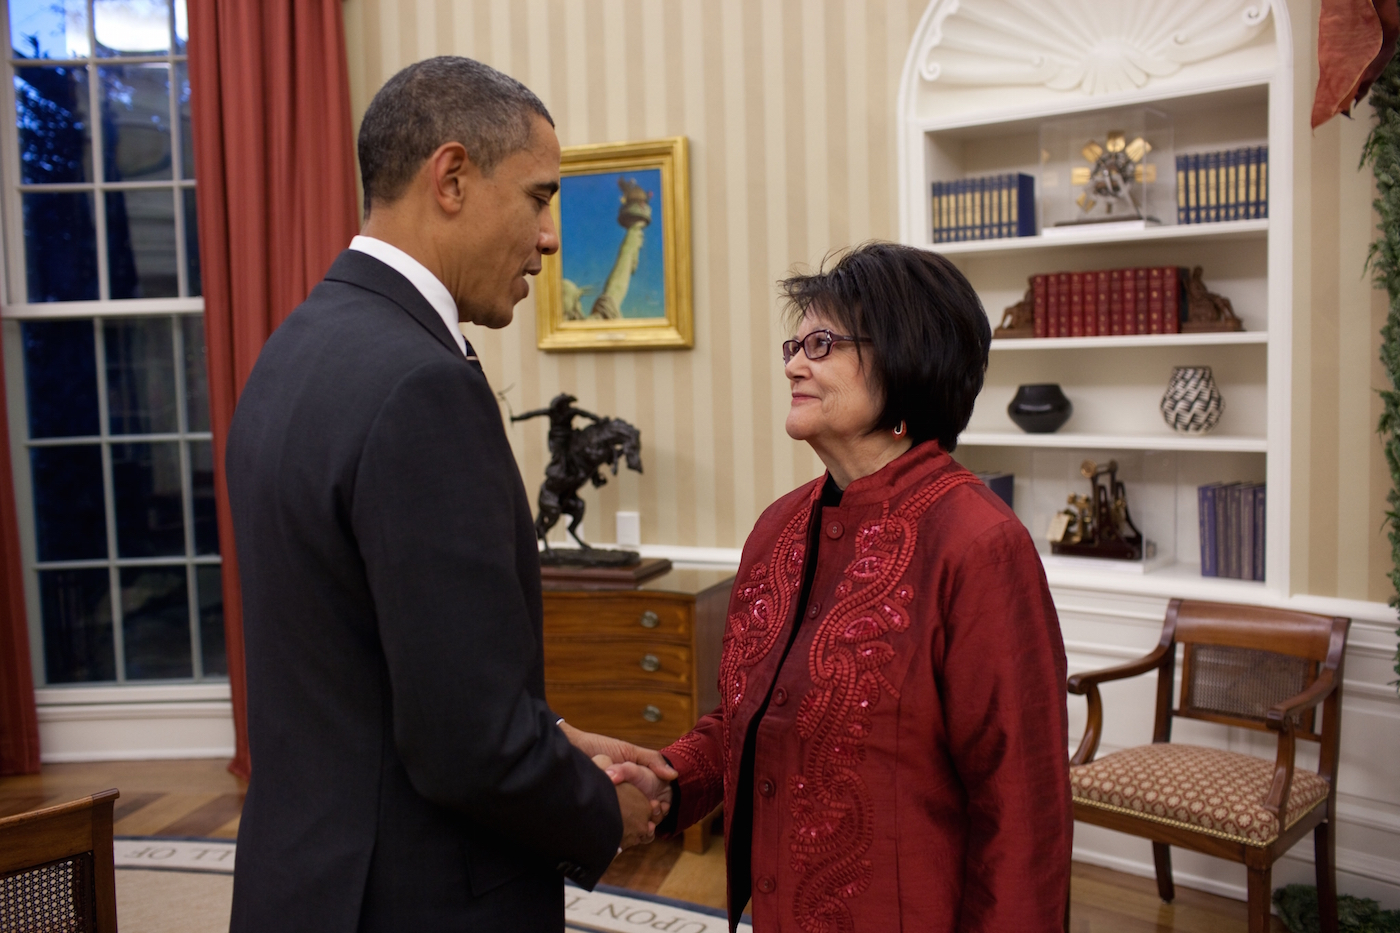 Appeals court won't award additional fees to late Elouise Cobell